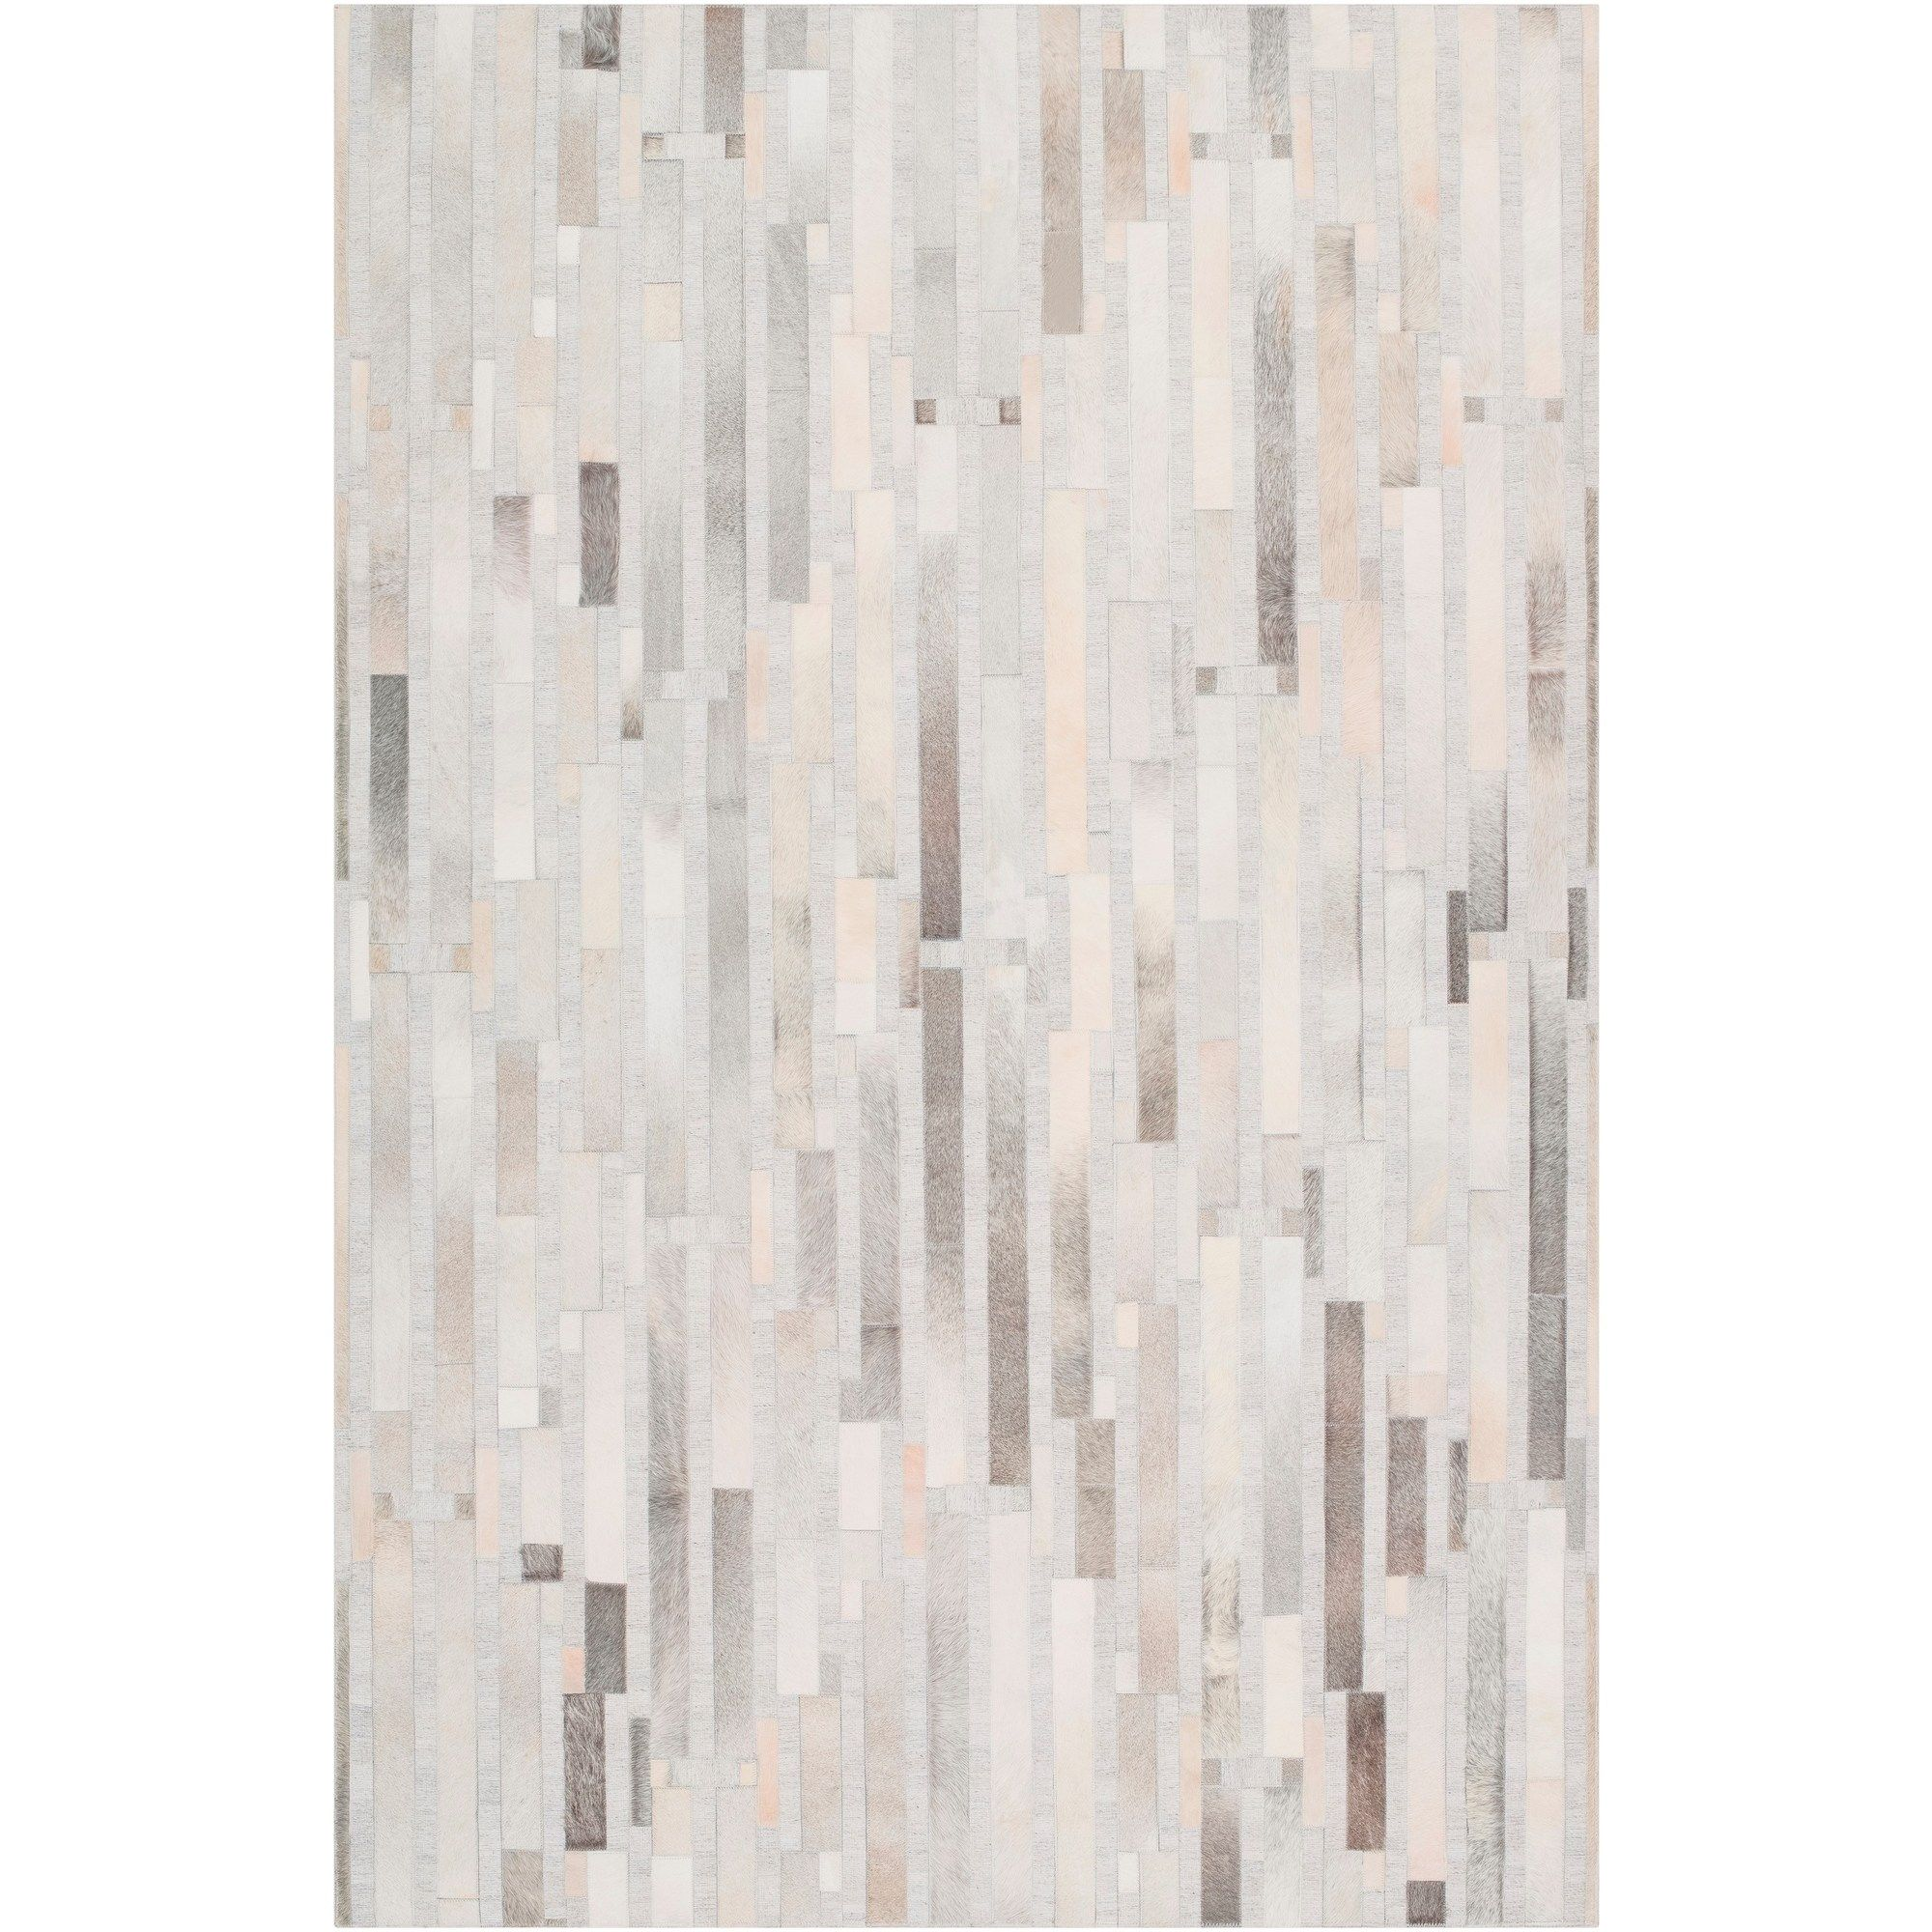 Hand Crafted Euclid Viscose Leather Area Rug 6 X 9 6 X 9 Light Grey Cowhide Abstract